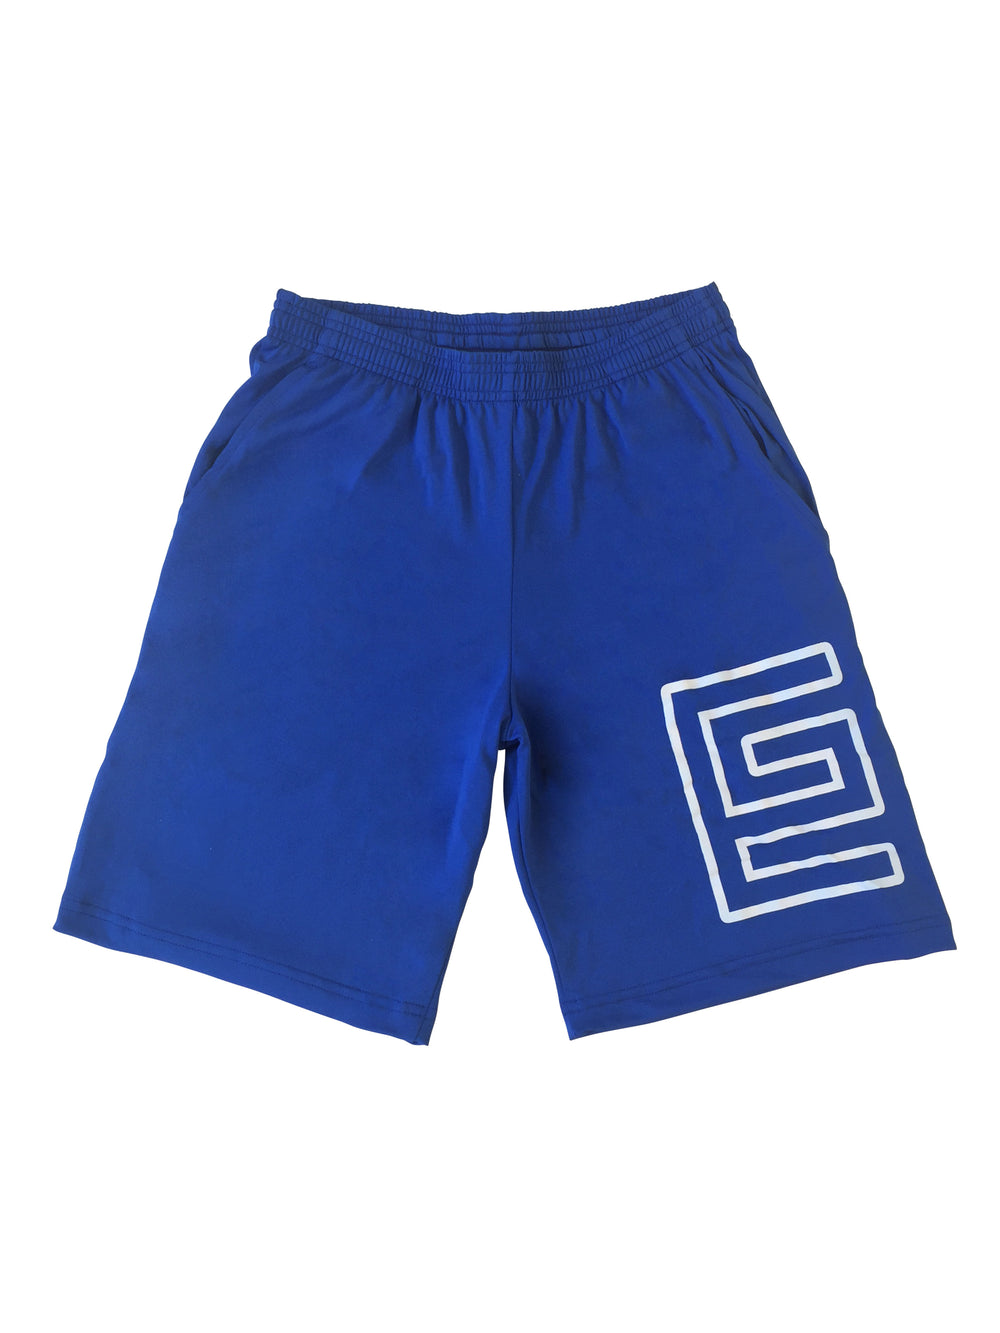 Grav Hollow Athletic Shorts (Blue)